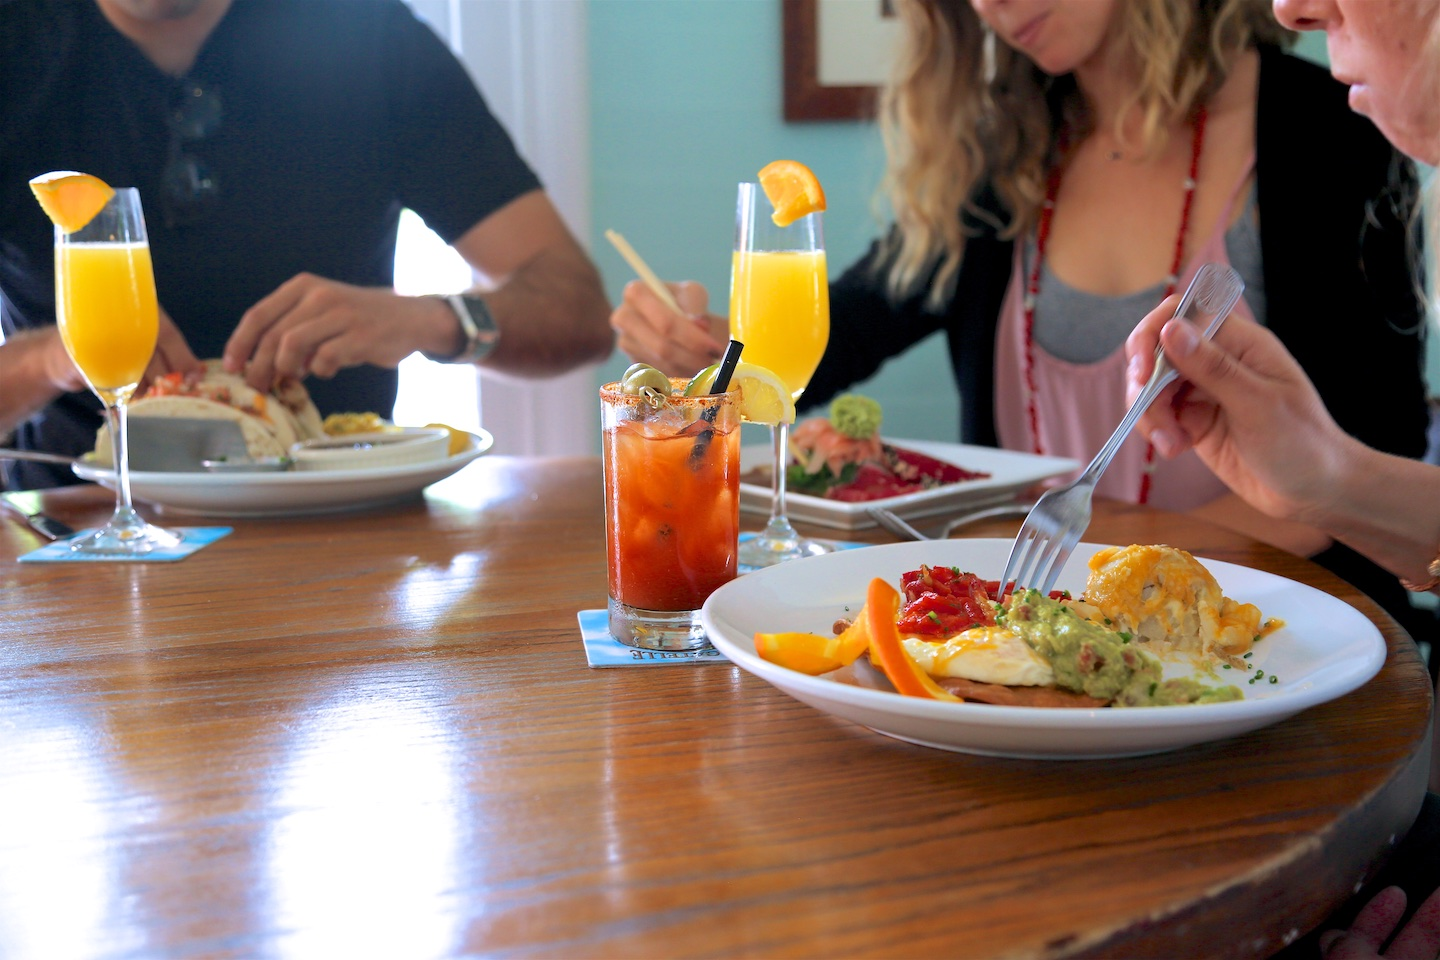 bagatelle brunch, huevos rancheros, mimosa and Bloody Mary